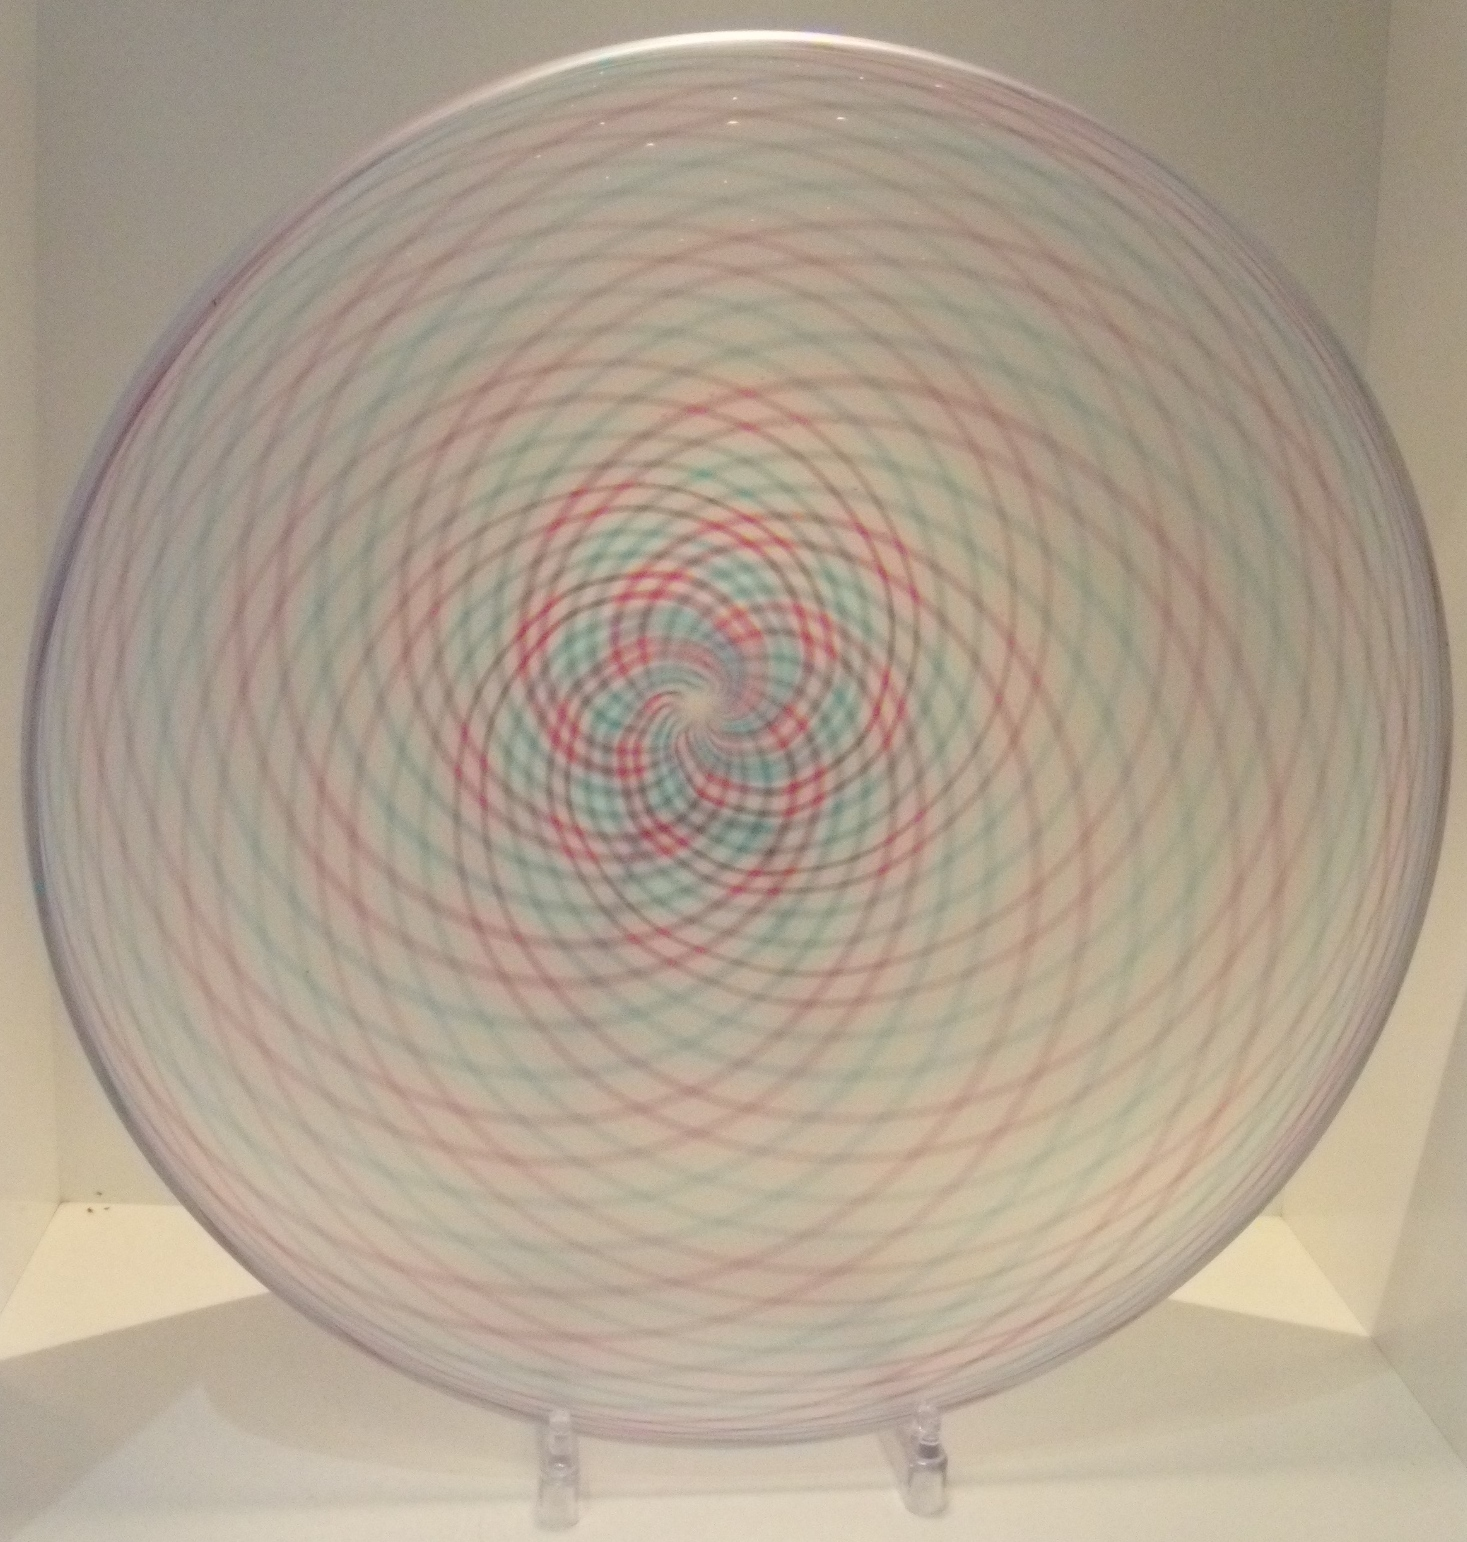 Etched Spiro Bowl $335 Measures 320 mm diameter x 100 mm deep